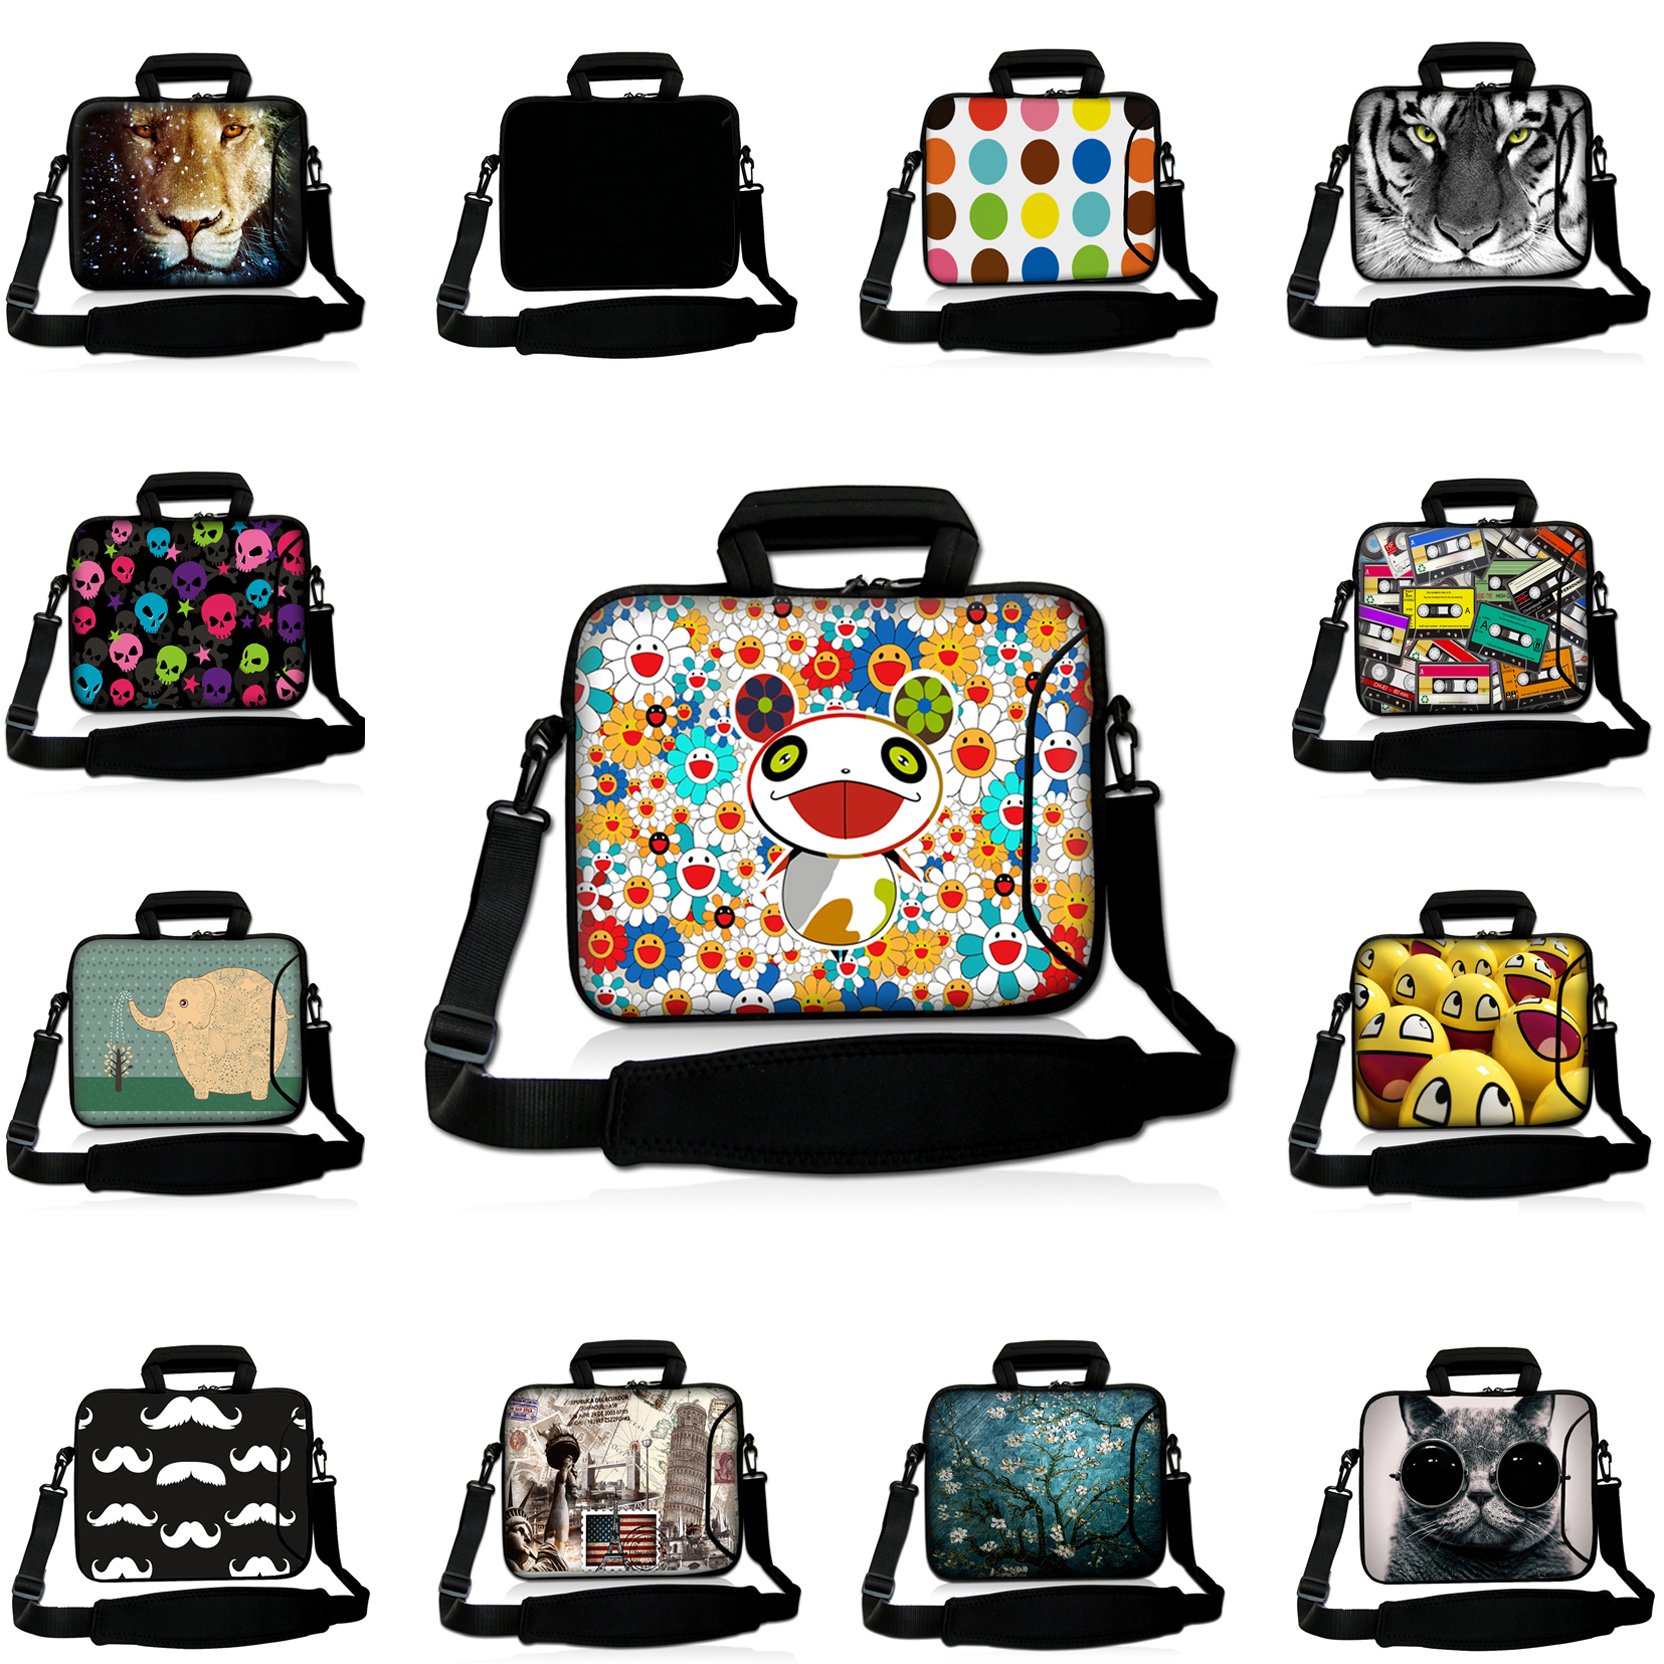 For Thinkpad 15 15.6 inch Neoprene Girls Computer Notebook PC Bags 15.3 15.4 inch Shoulder Strap Messenger Laptop Cover Cases<br><br>Aliexpress